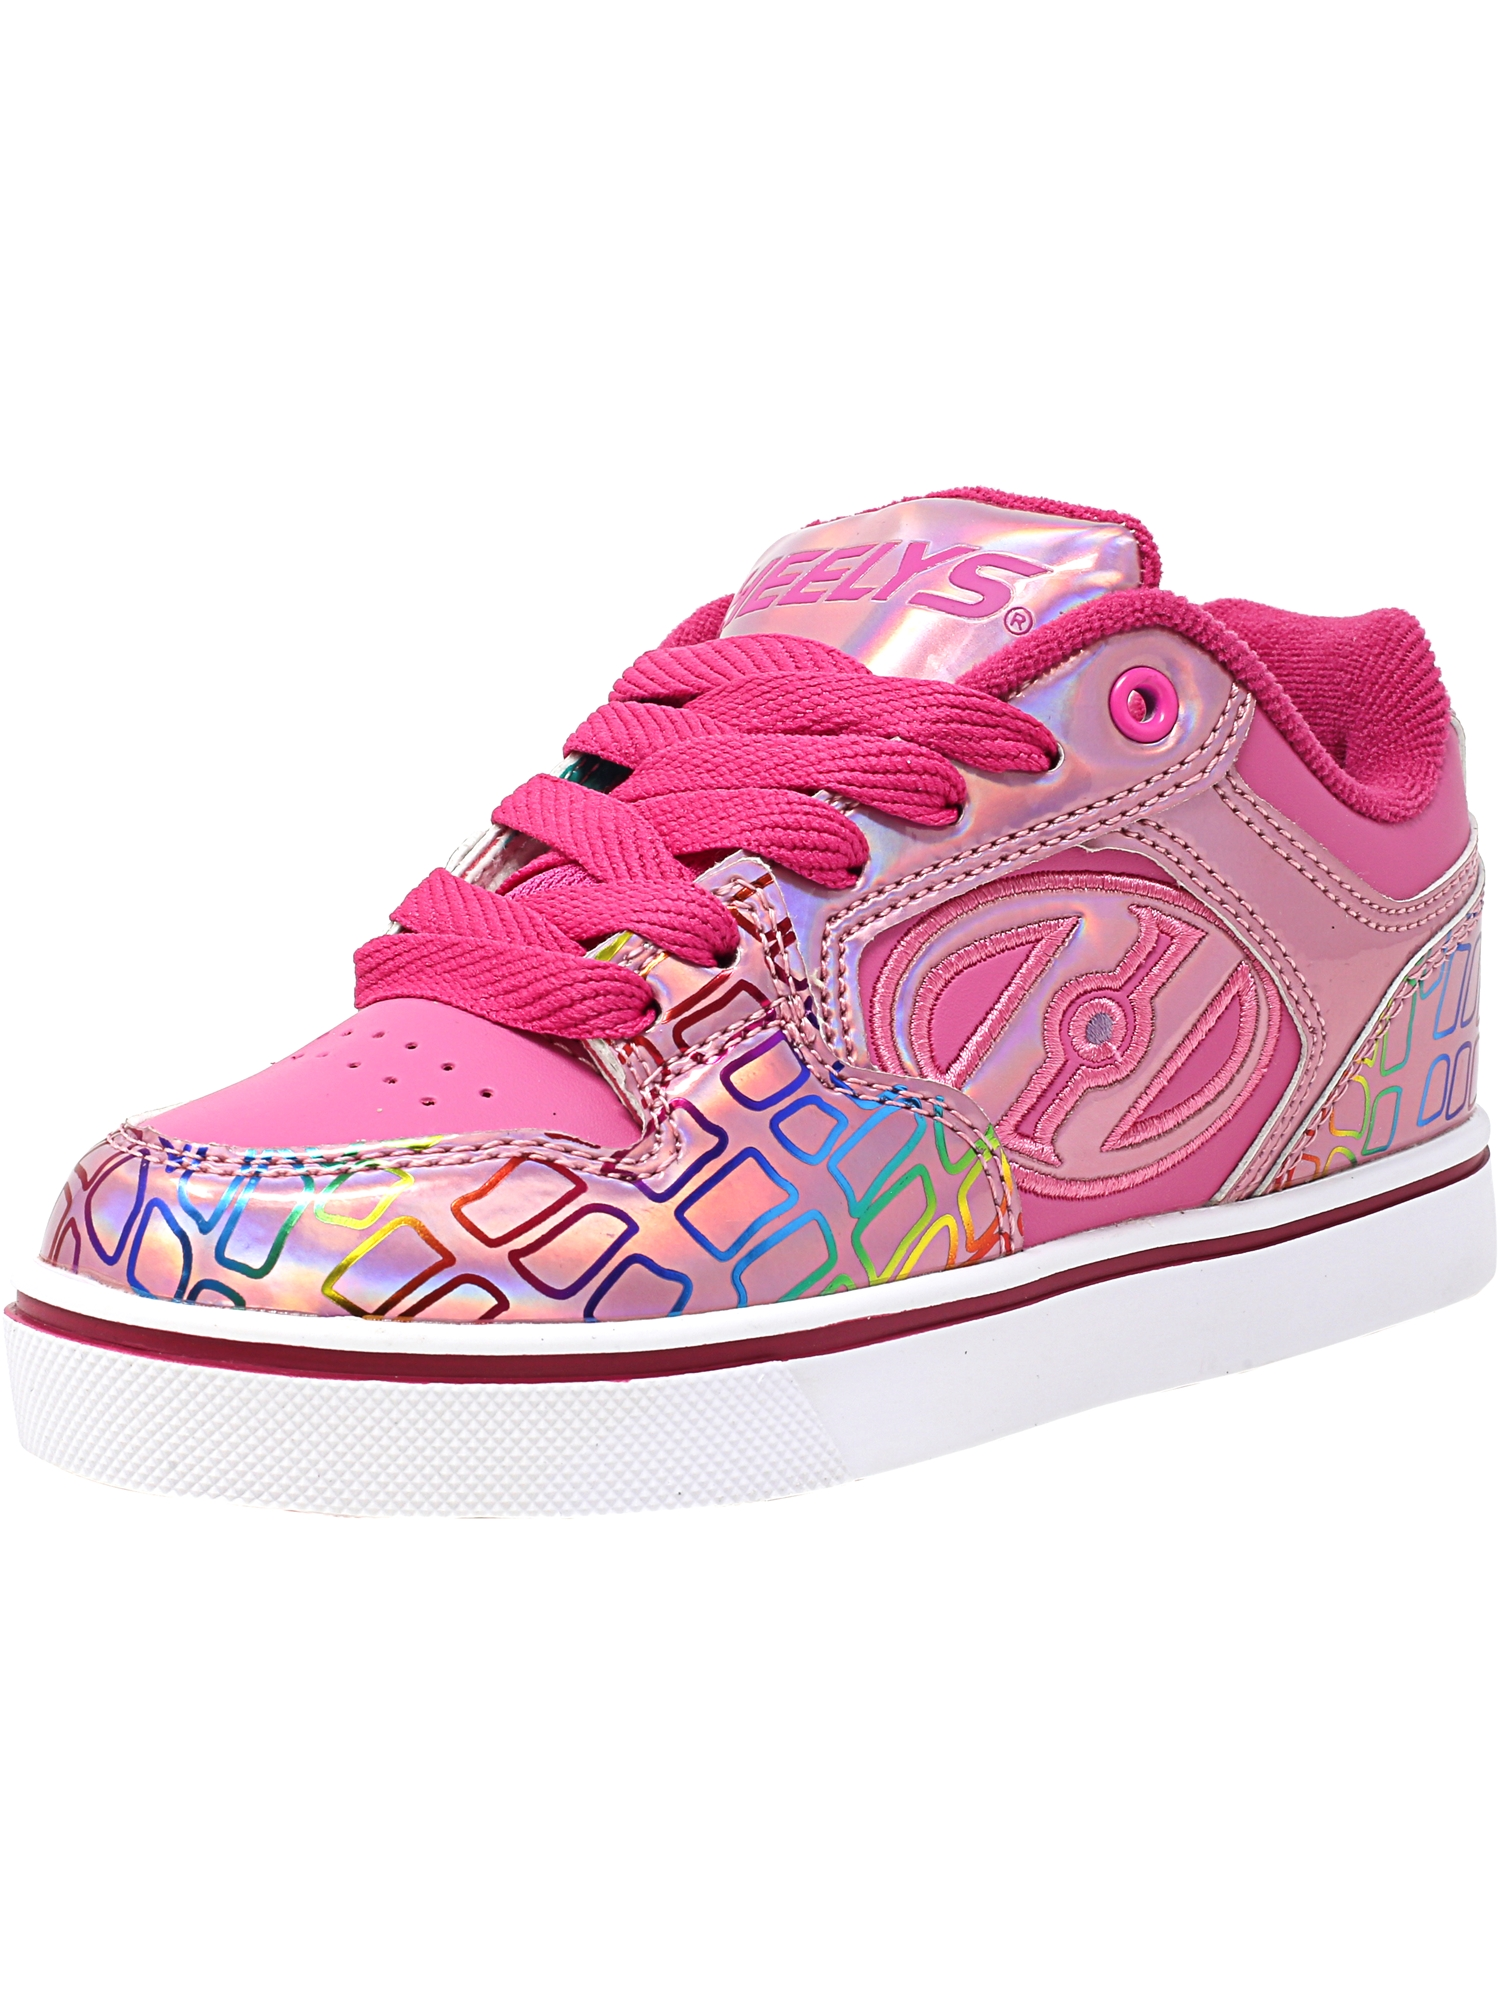 Heelys Motion Plus Pink / Light Multi Ankle-High Skateboarding Shoe - 7M